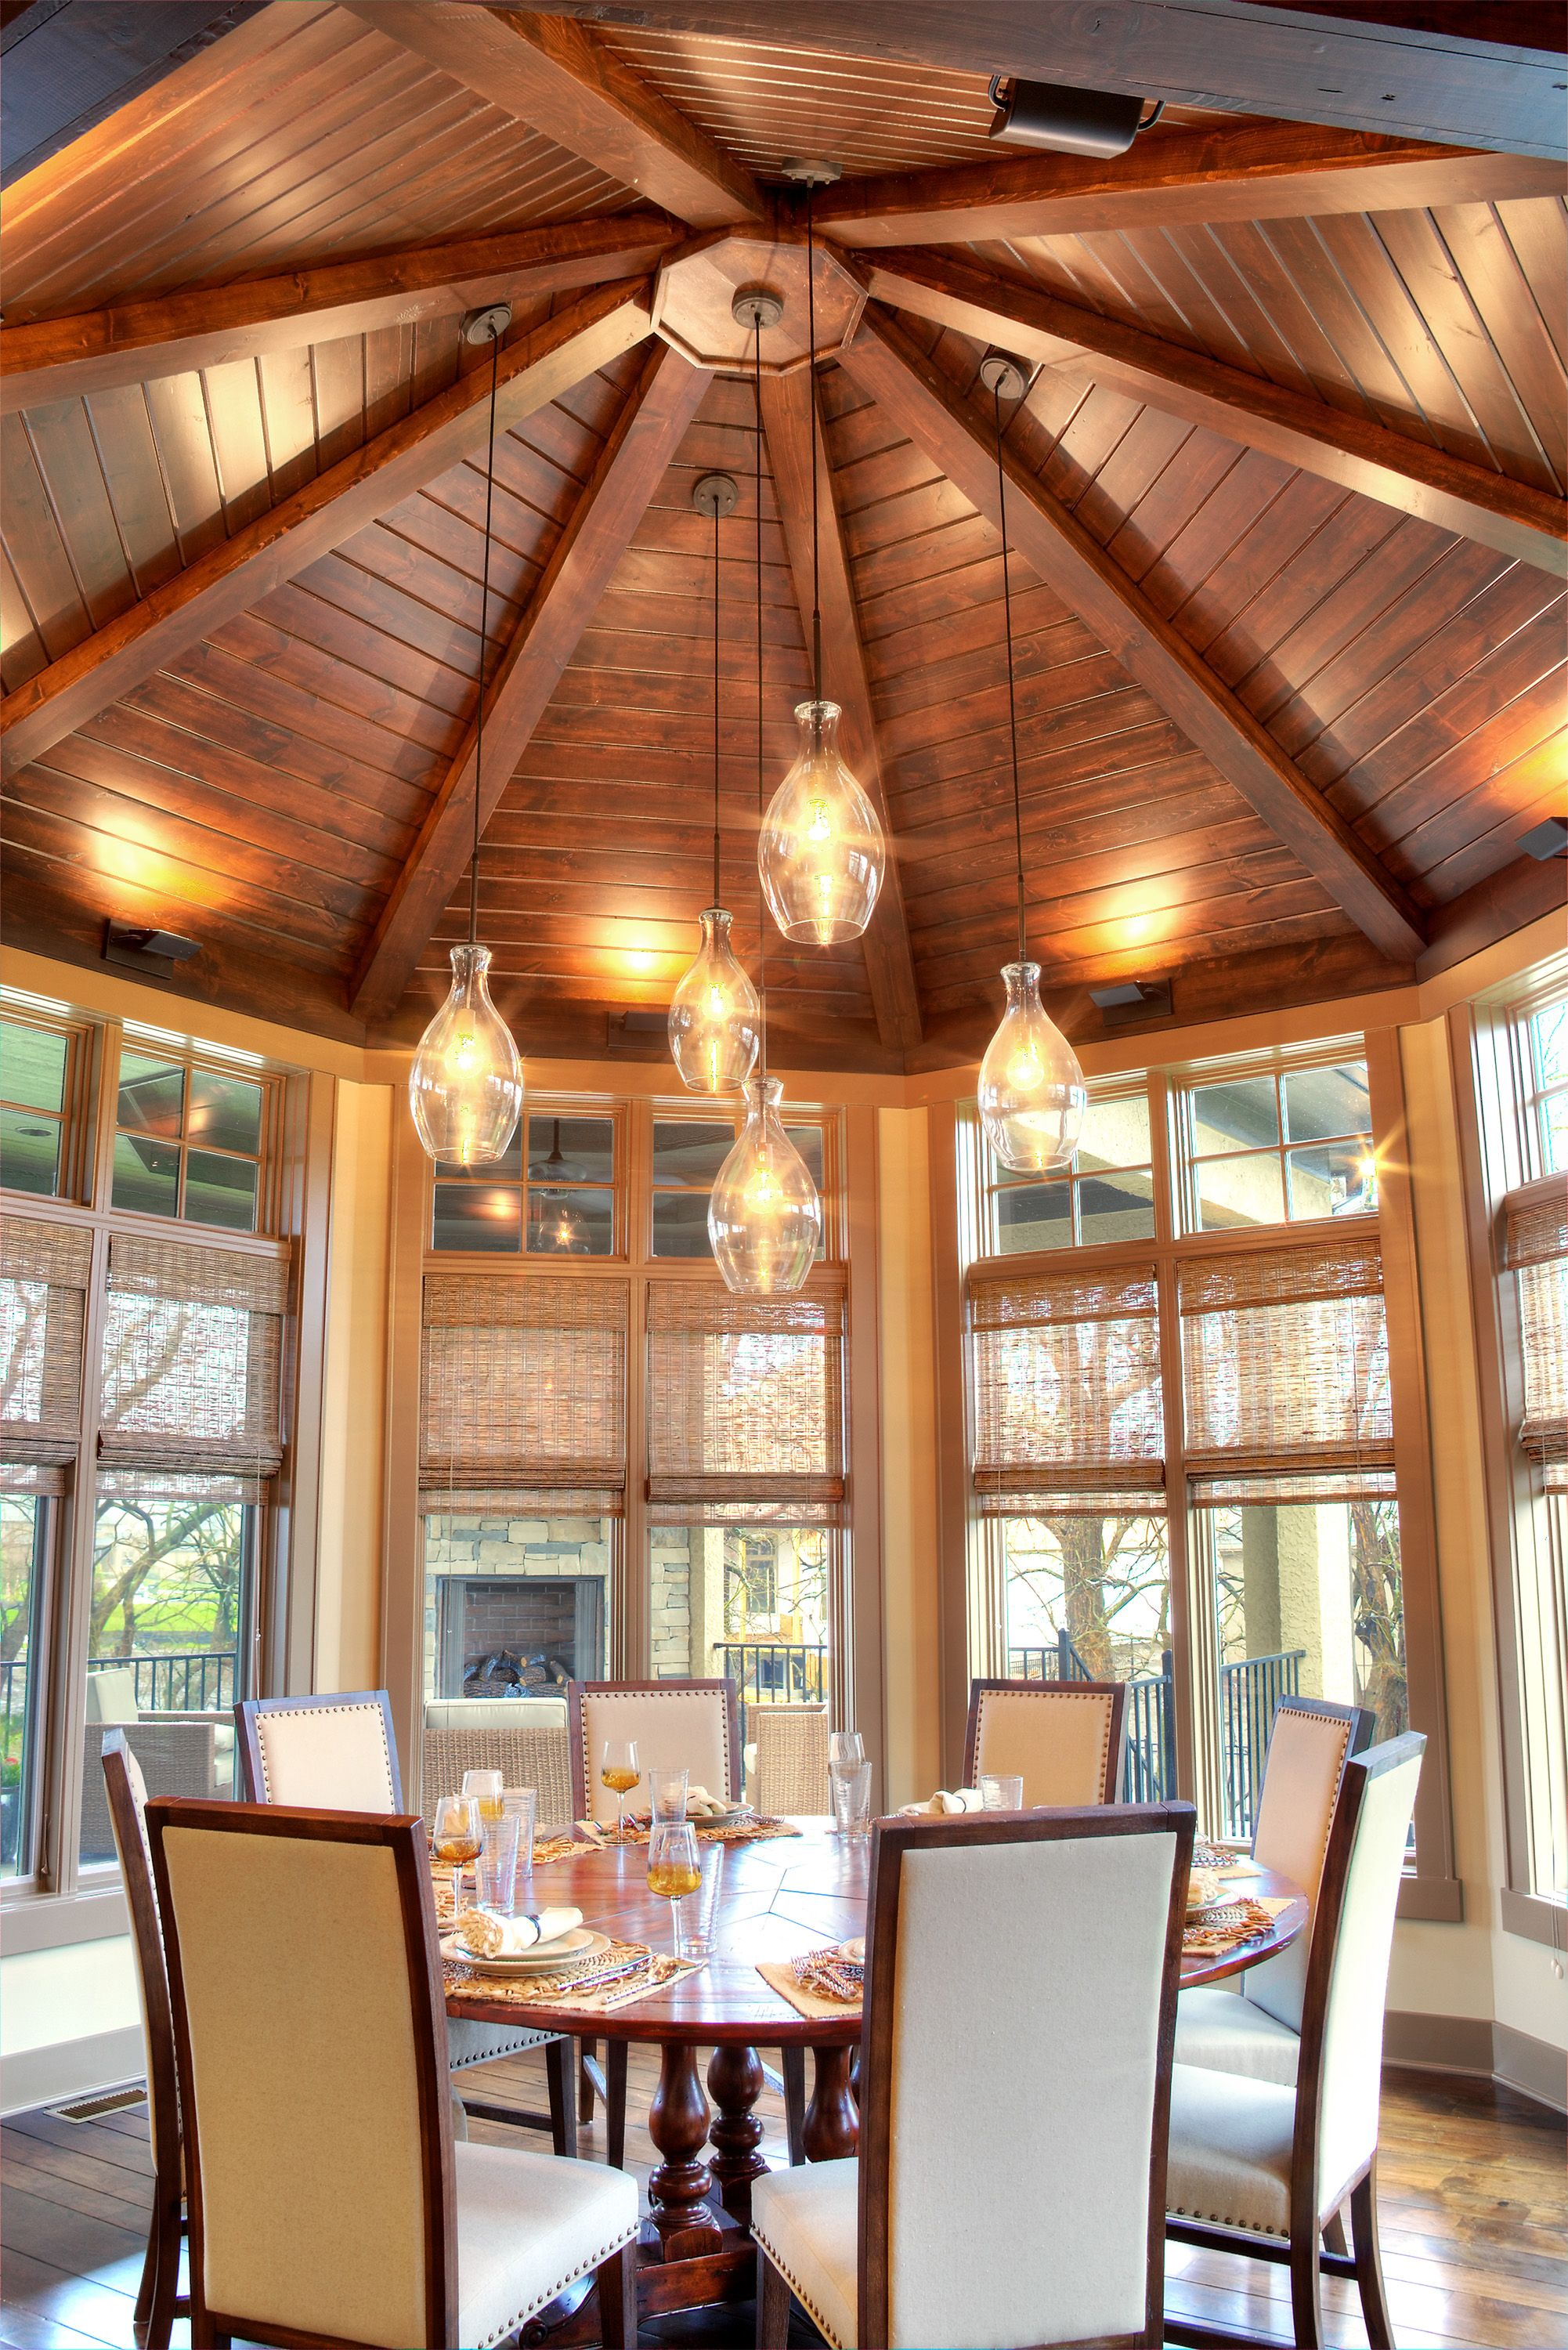 Wooden Rooms Designs: This Amazing Octagonal Dining Room With A Vaulted Wood